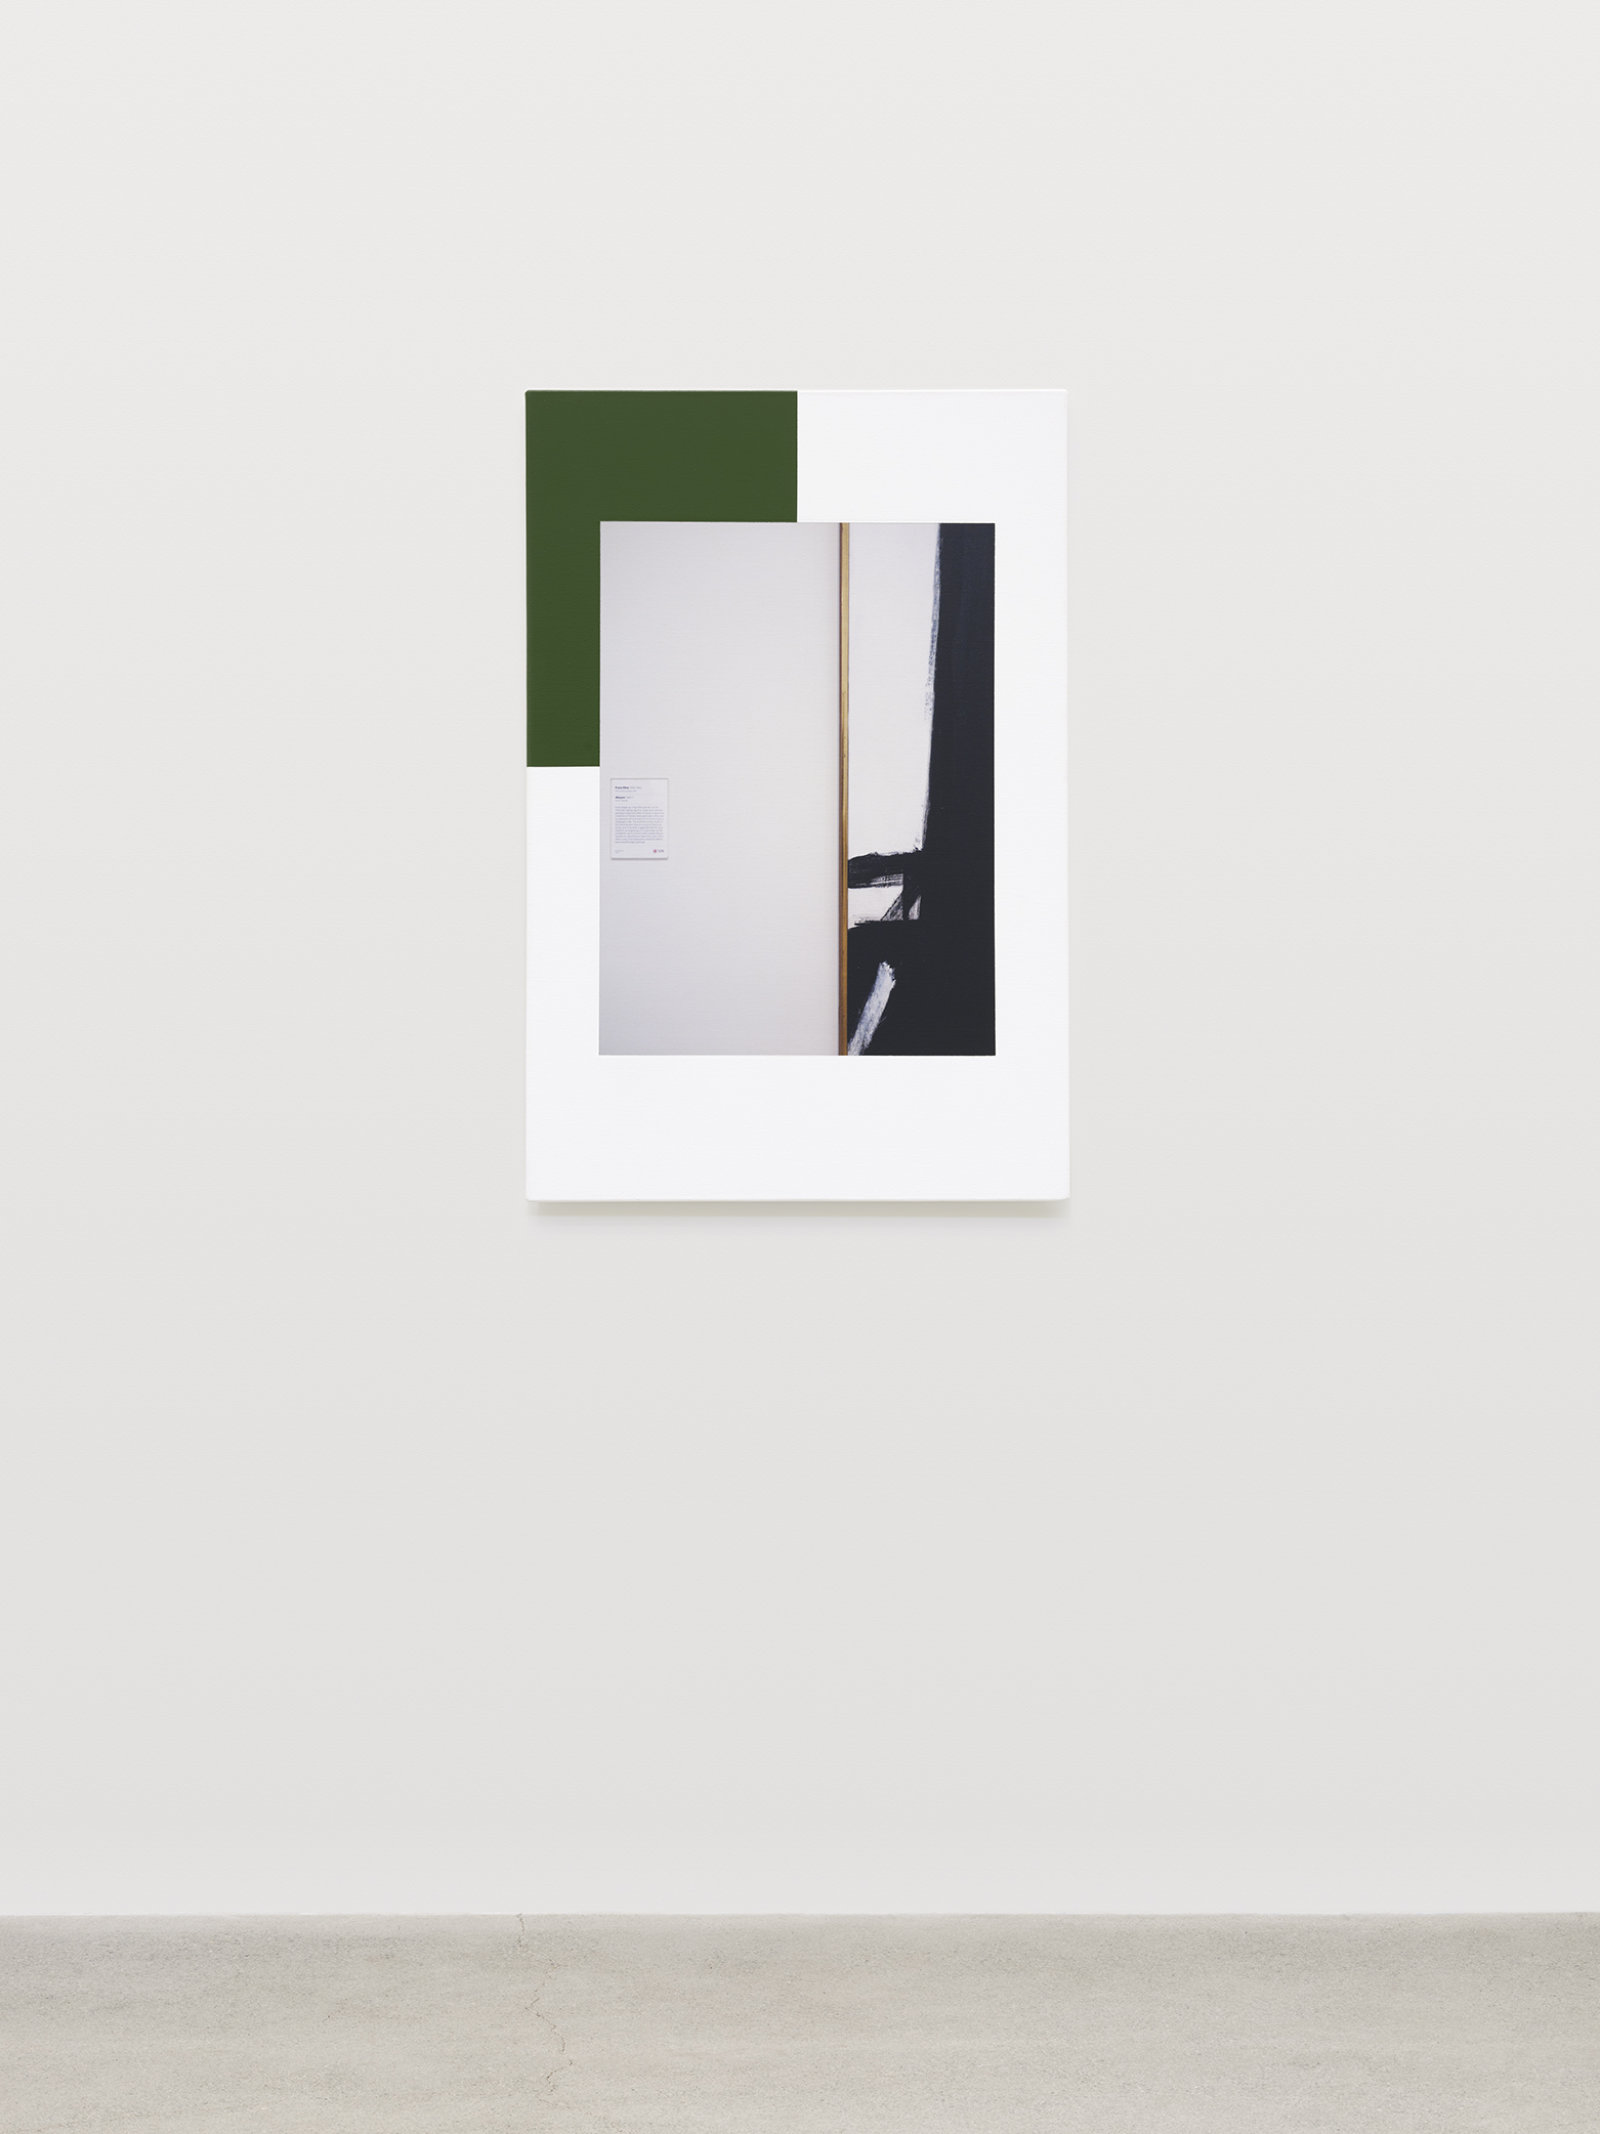 Ian Wallace, Abstract Composition (with Franz Kline), 2012, photolaminate with acrylic on canvas, 36 x 24 in. (91 x 61 cm)